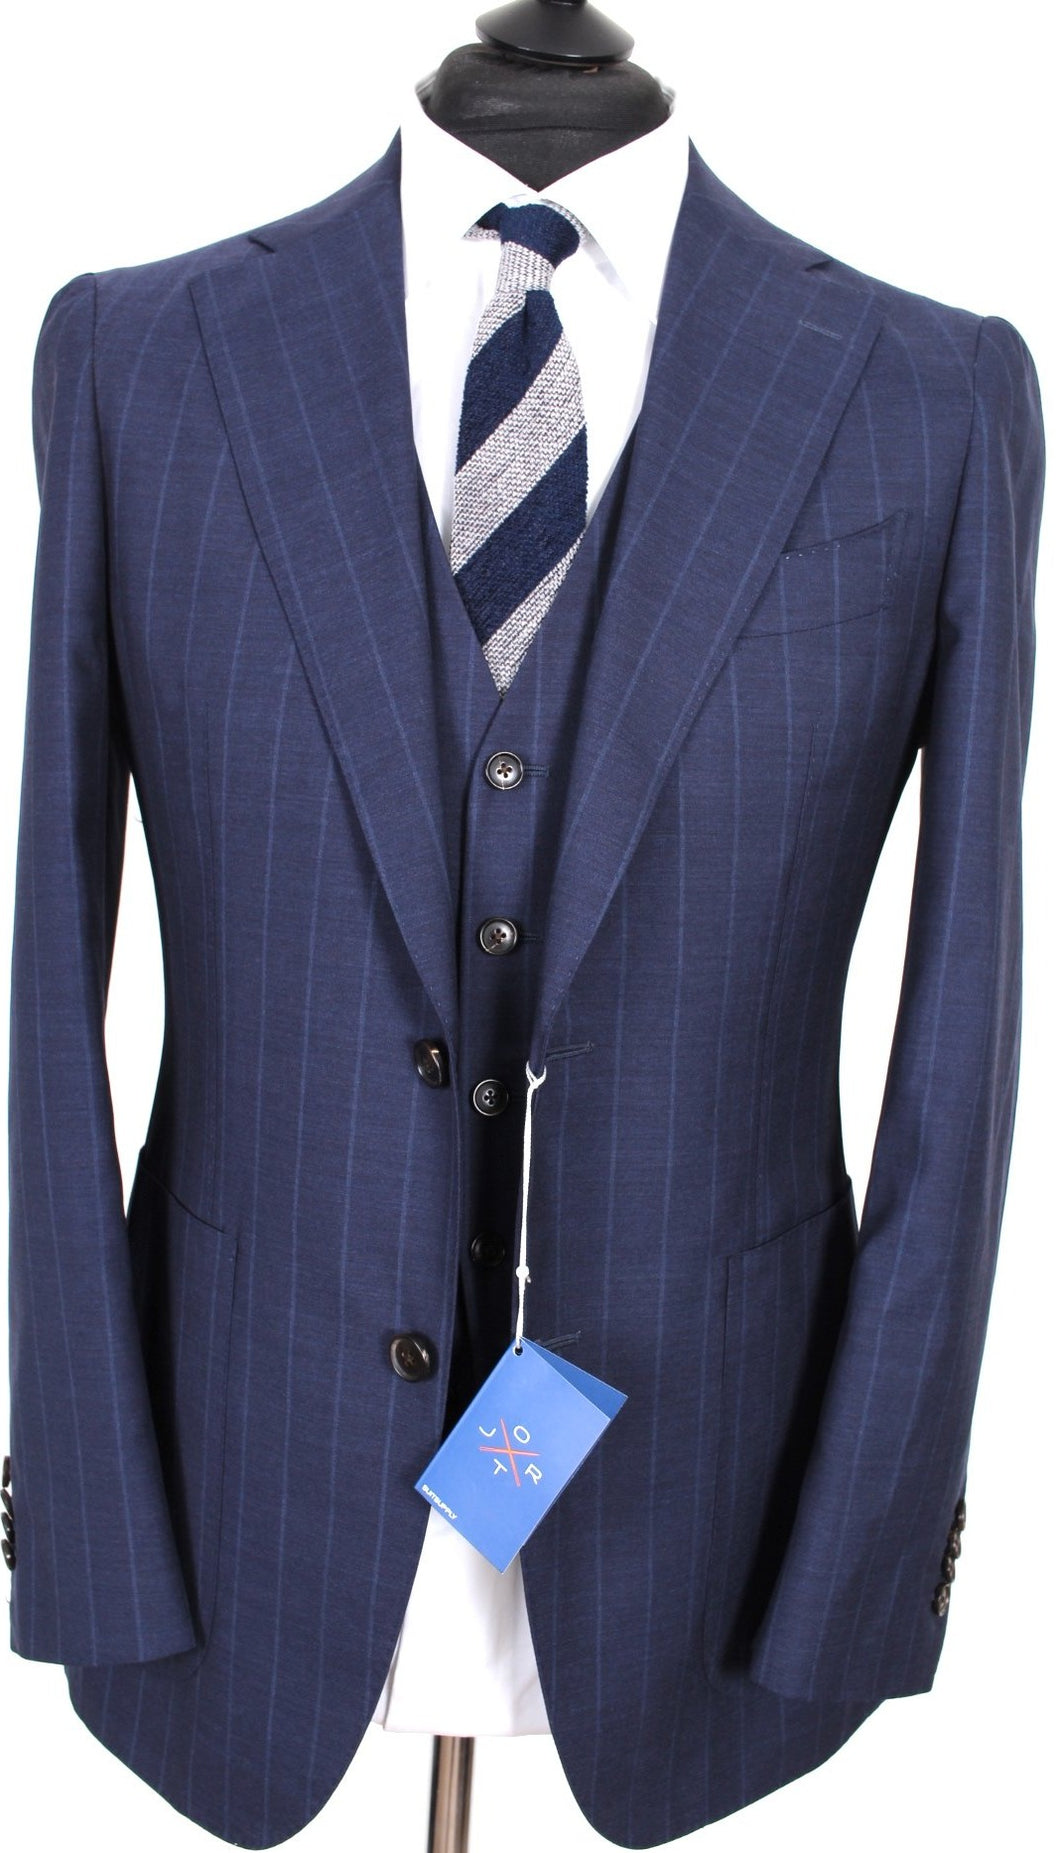 New Suitsupply JORT Navy Stripe 100% Wool 3 Piece Suit - Size 44R